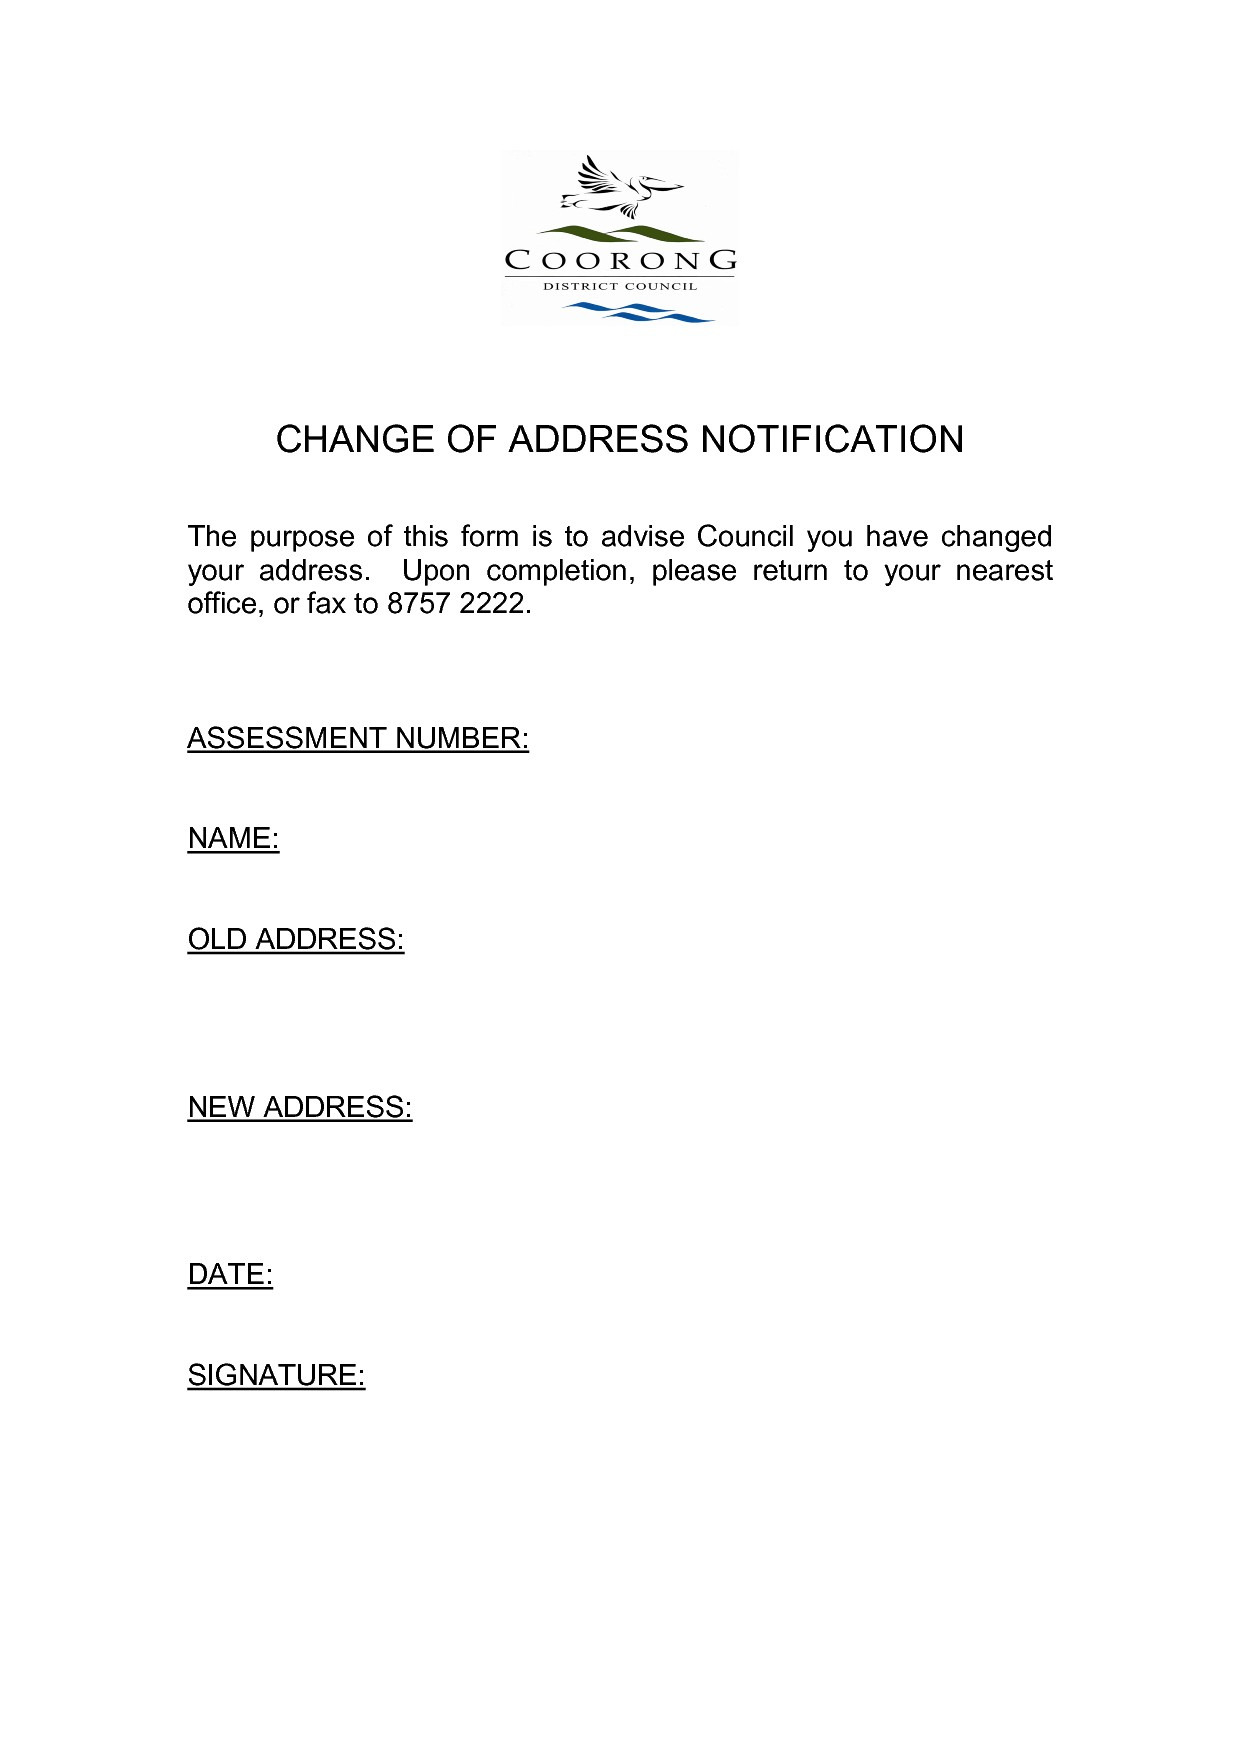 Change of address letter template examples letter template collection change of address letter template elegant change business address letter template flashek Images